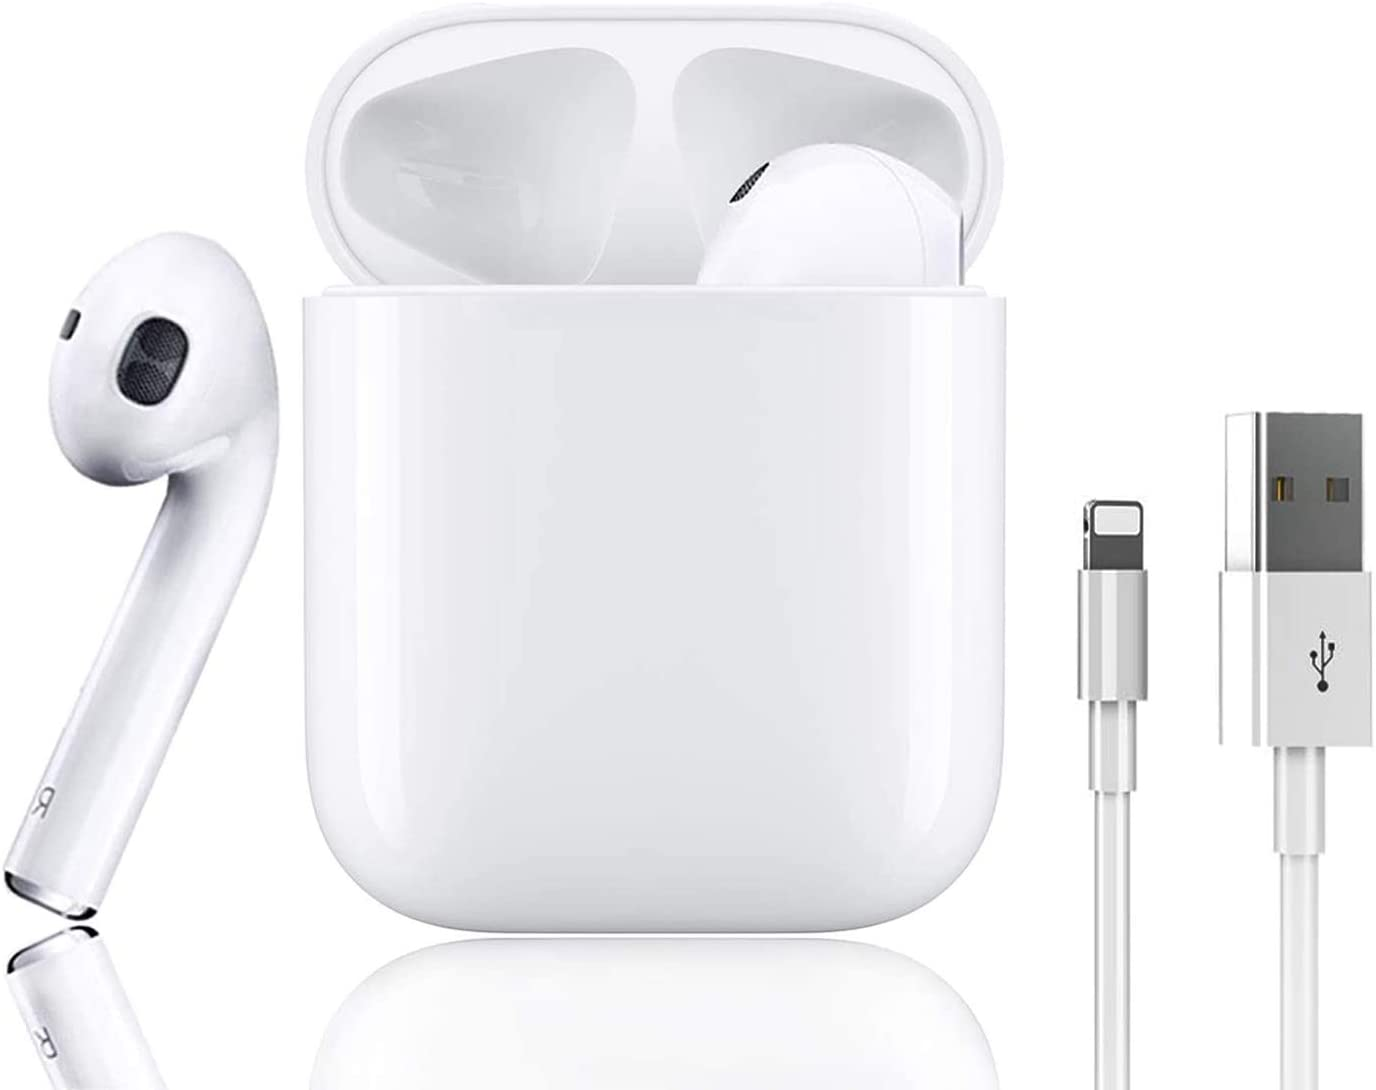 Bluetooth Earbuds, Bluetooth 5.0 Headphones Wireless Earbuds 24H Cycle Playtime in-Ear Wireless Headphones Earphones for Apple Airpods iPhone/Android